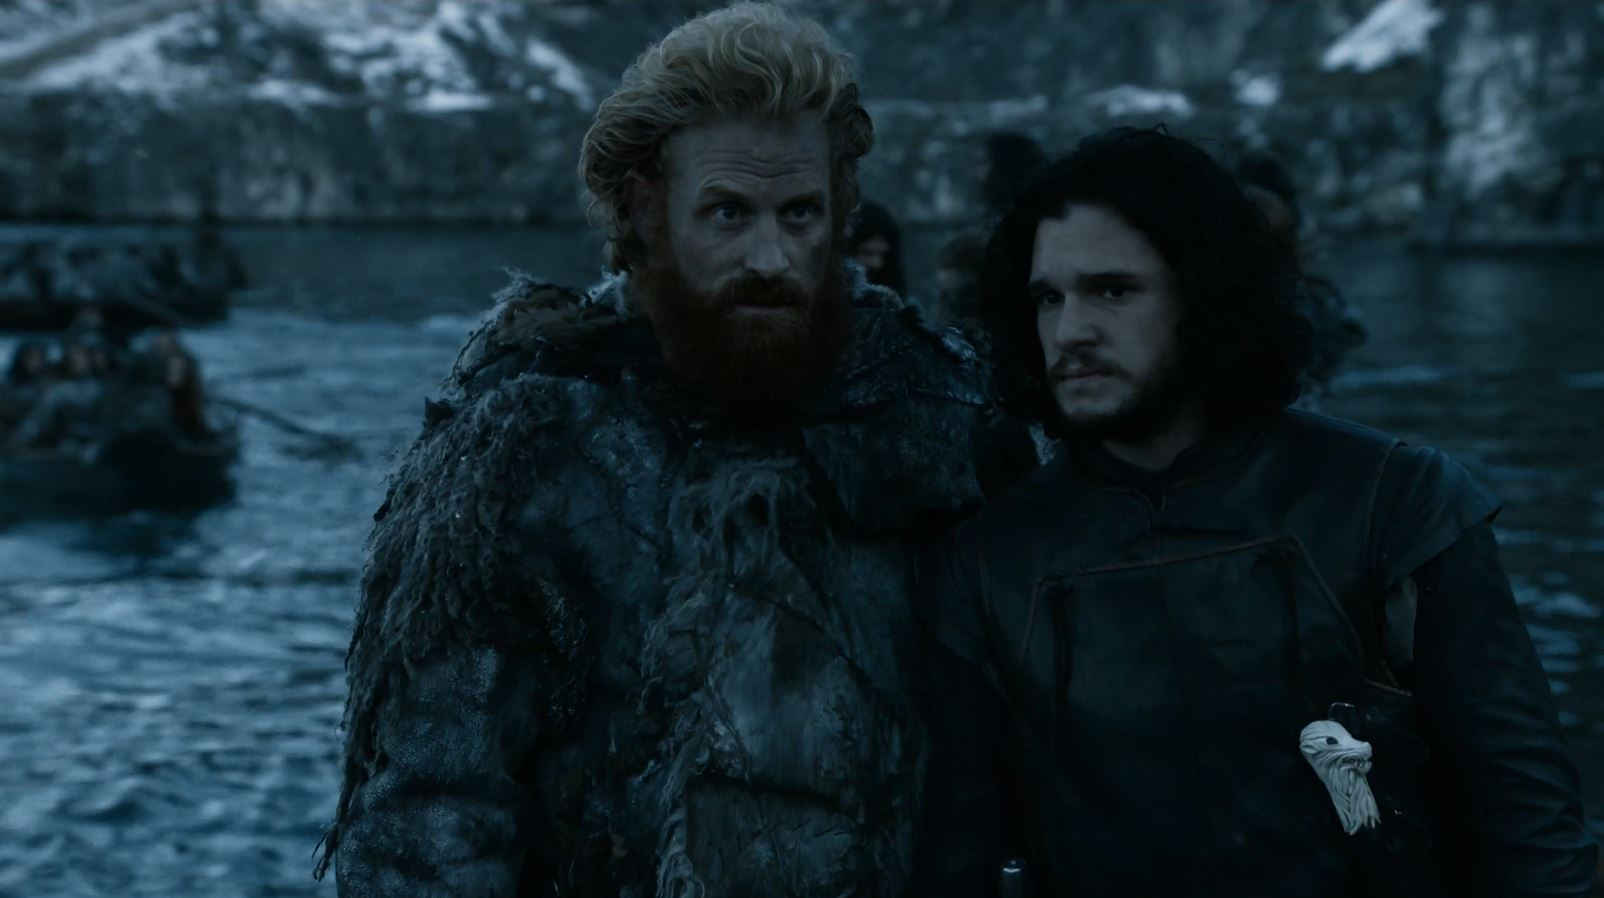 Tormund and Jon Snow at Hardhome. Game of Thrones S5Ep8 Hardhome Review.